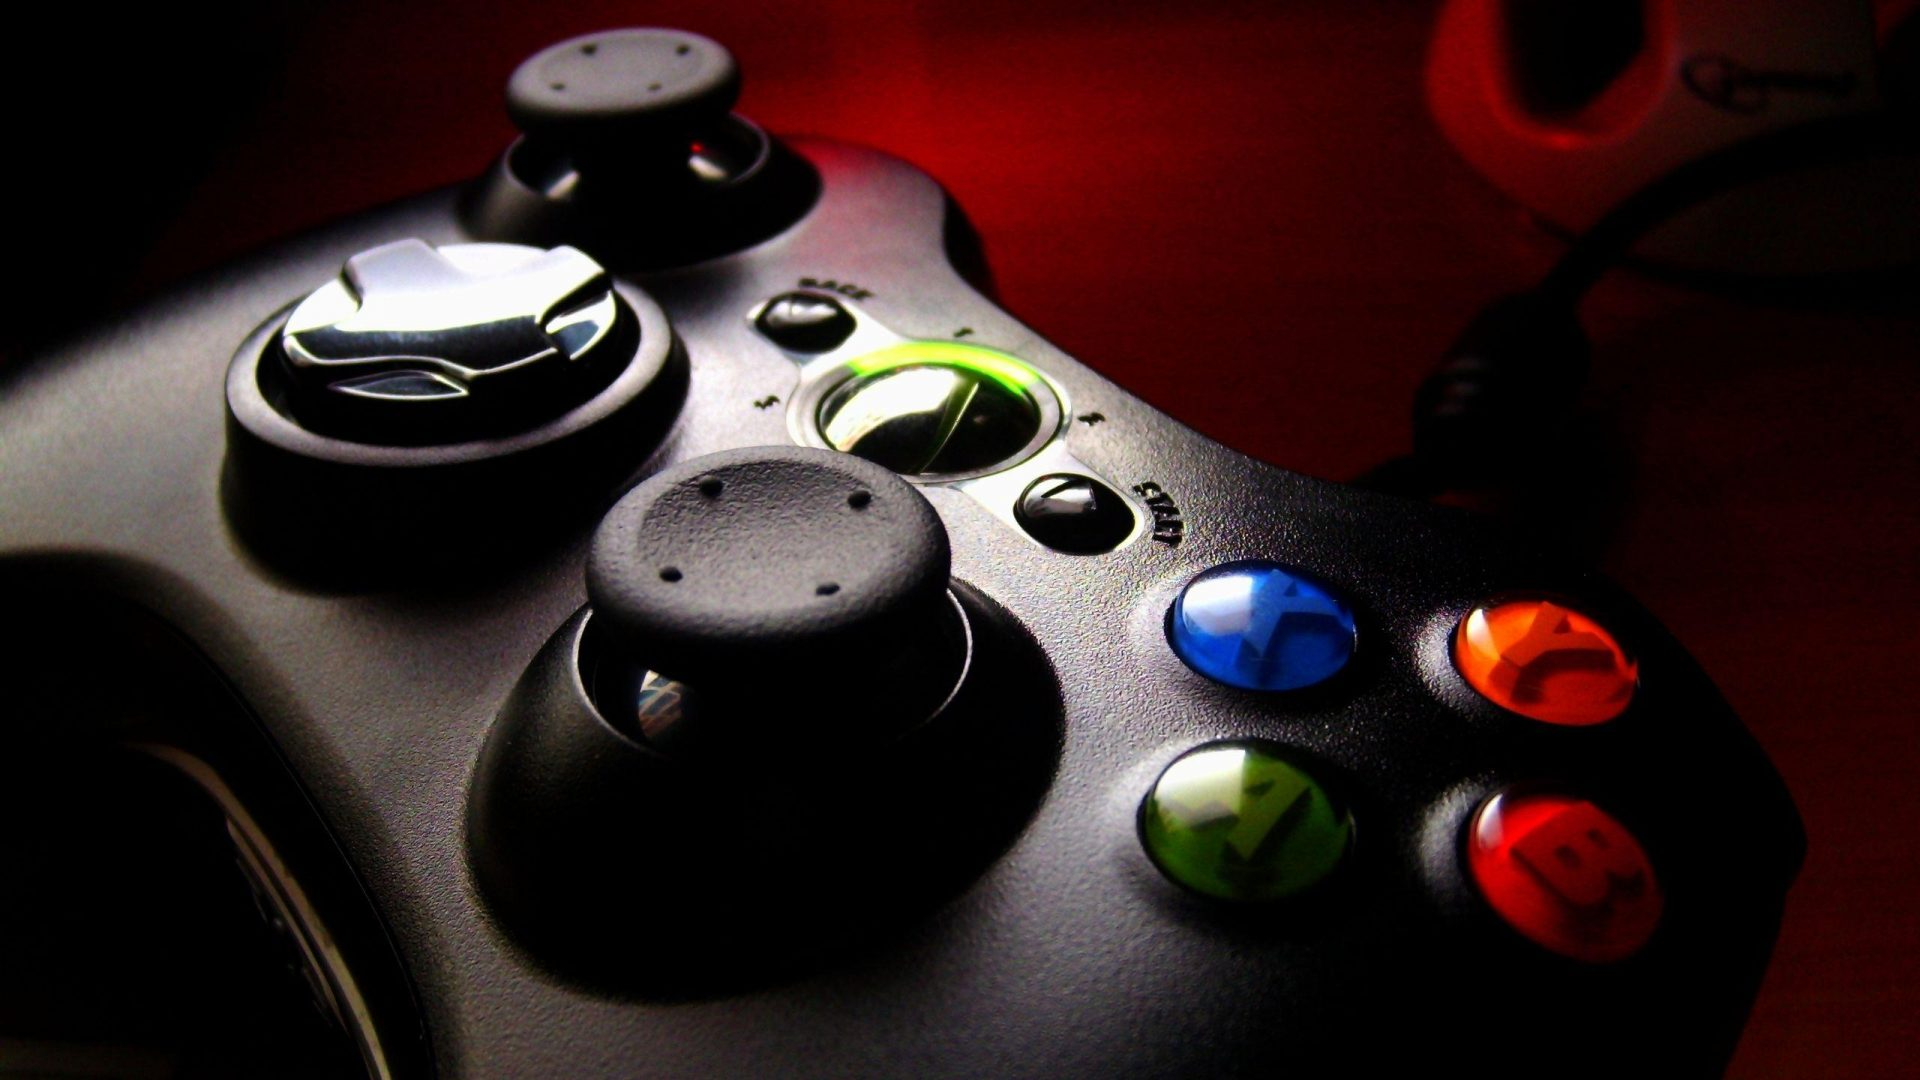 How To Clean Your Gaming Consoles Safely And Easily?